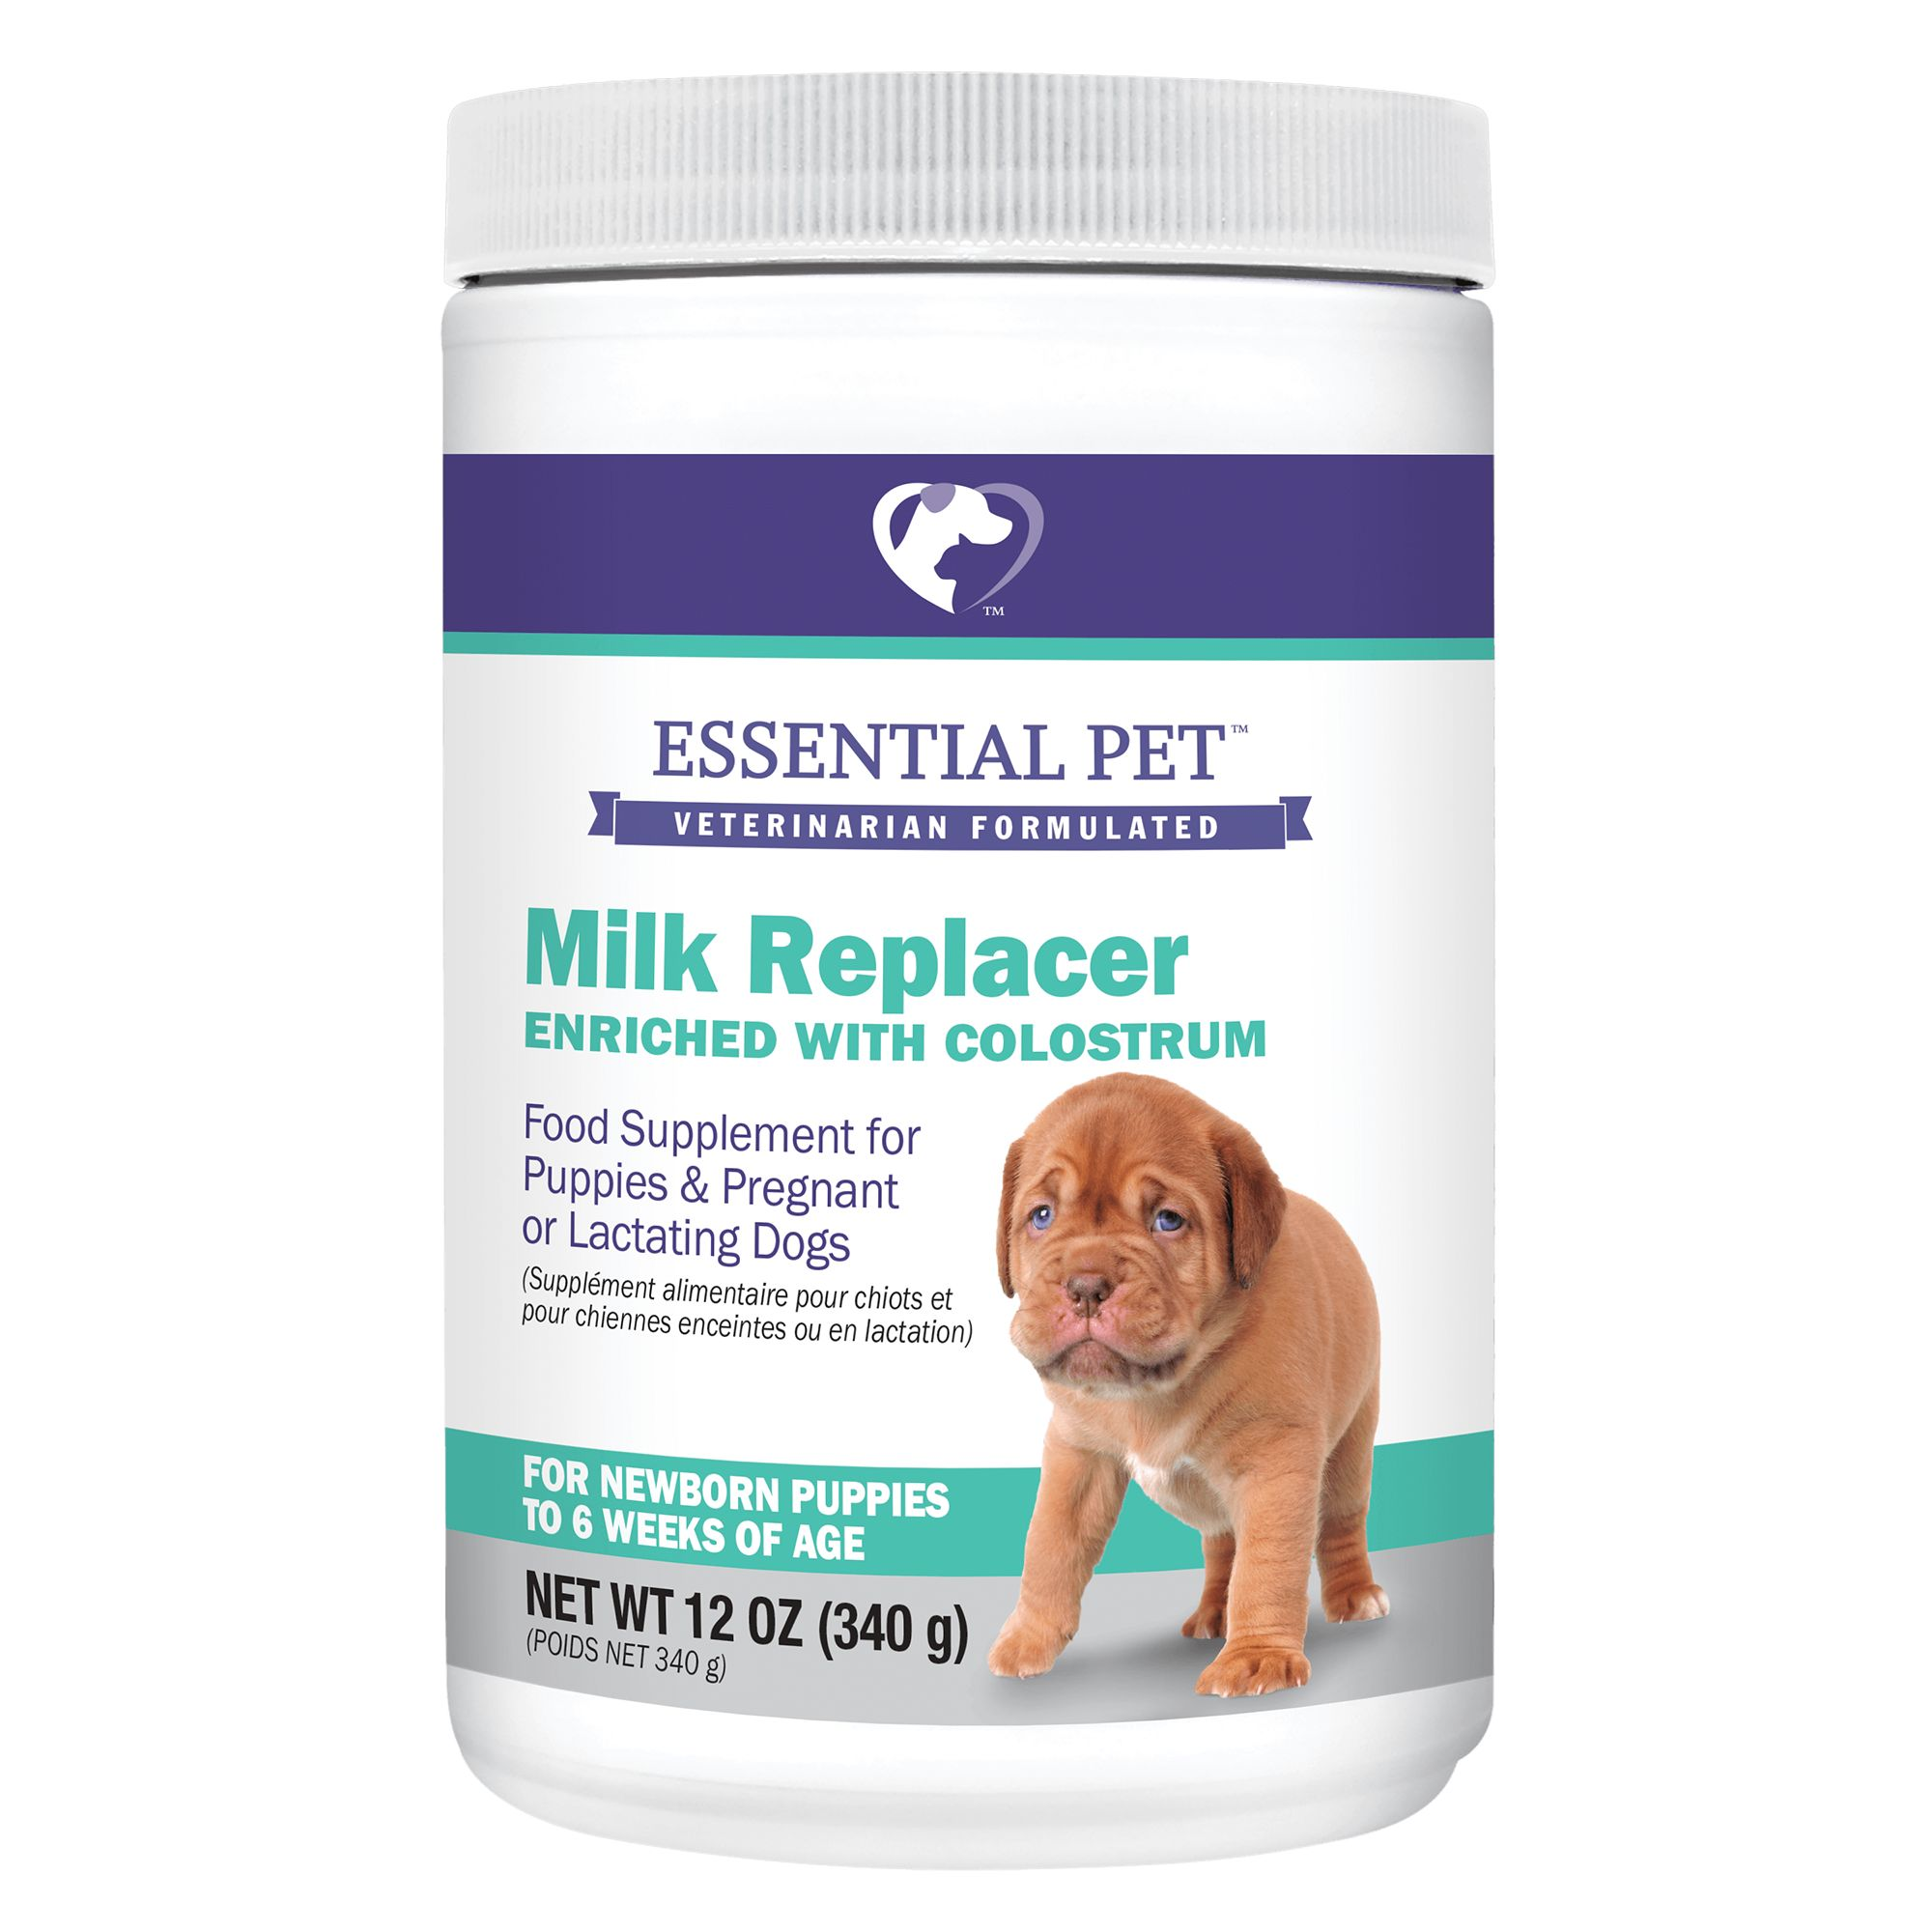 21st Century Essential Pet Milk Replacer Puppy Pregnant Or Lactating Dog Food Supple